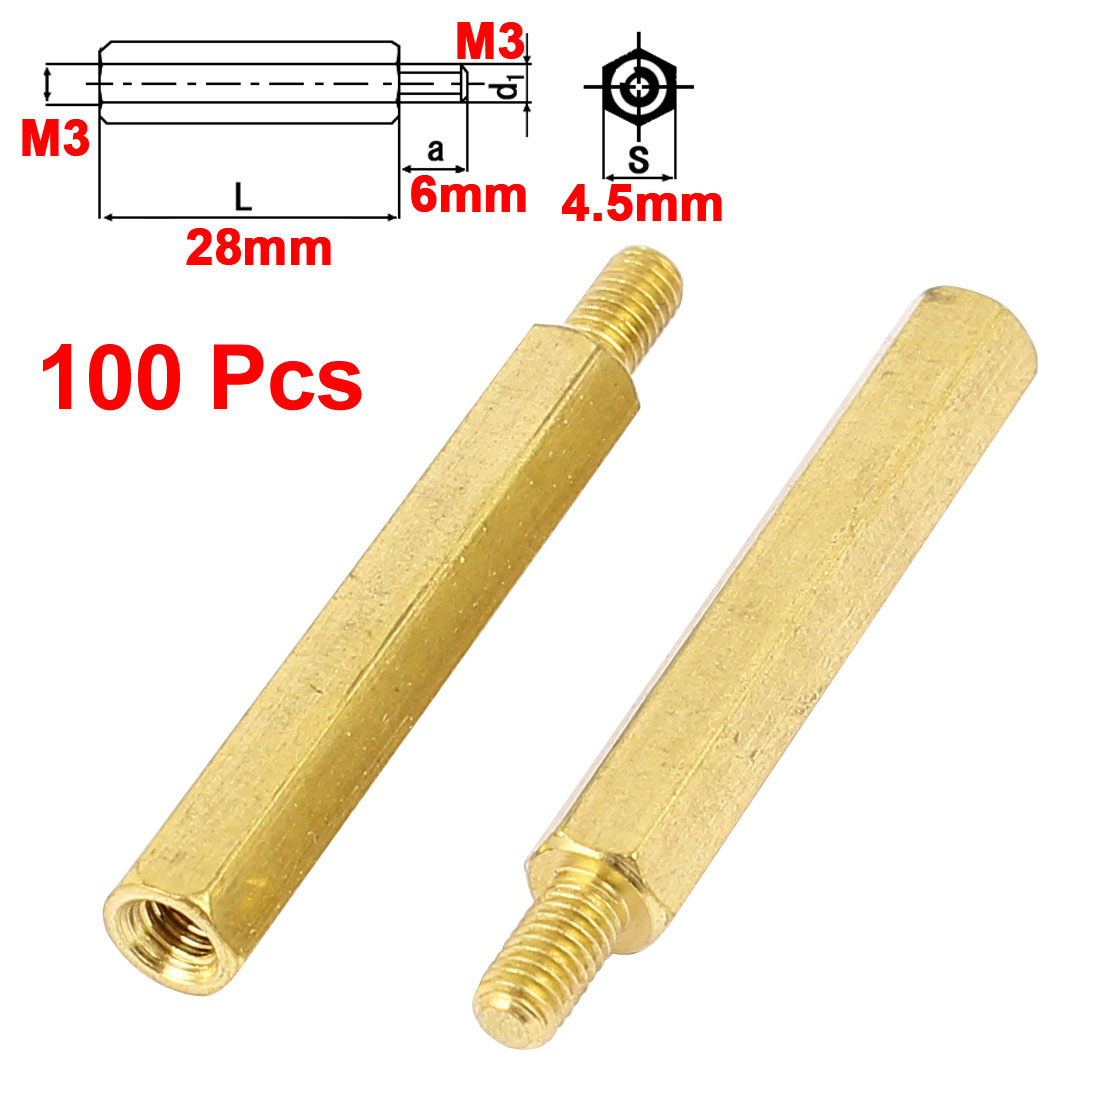 100Pcs M3 Male to Female 28mm+6mm Screw Threaded Brass Hex Standoff Spacer for PCB Motherboard